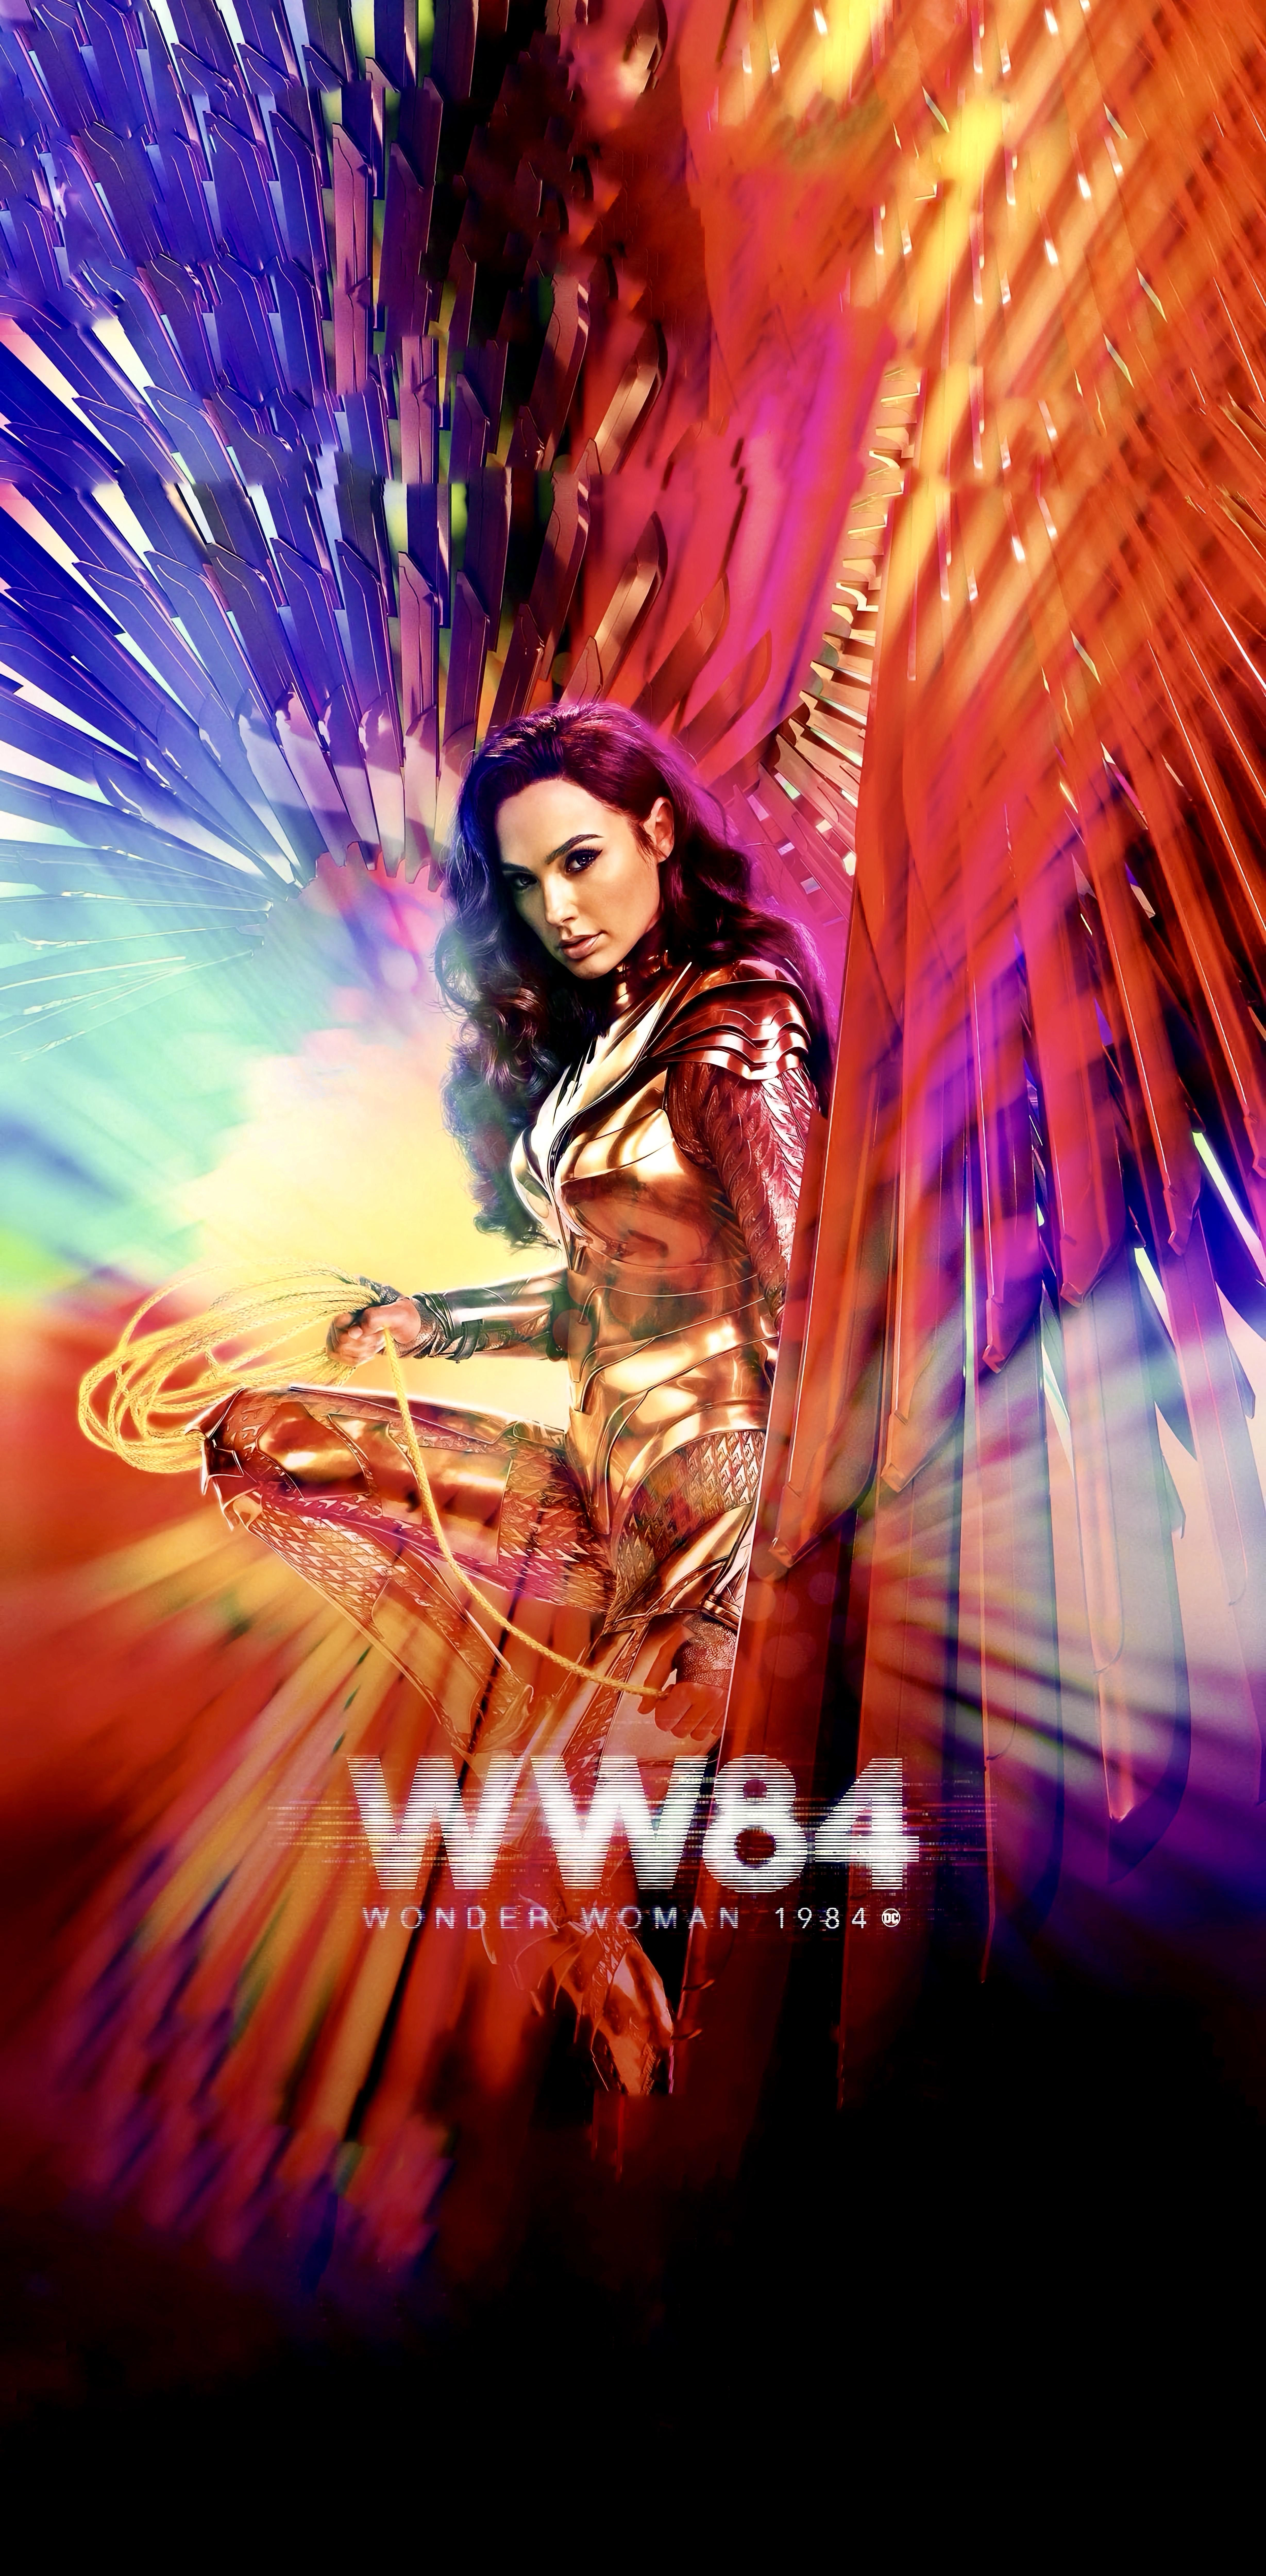 Wonder Woman 1984 Made The New Poster Taller In 2020 New Poster Wonder Woman Movie Wonder Woman